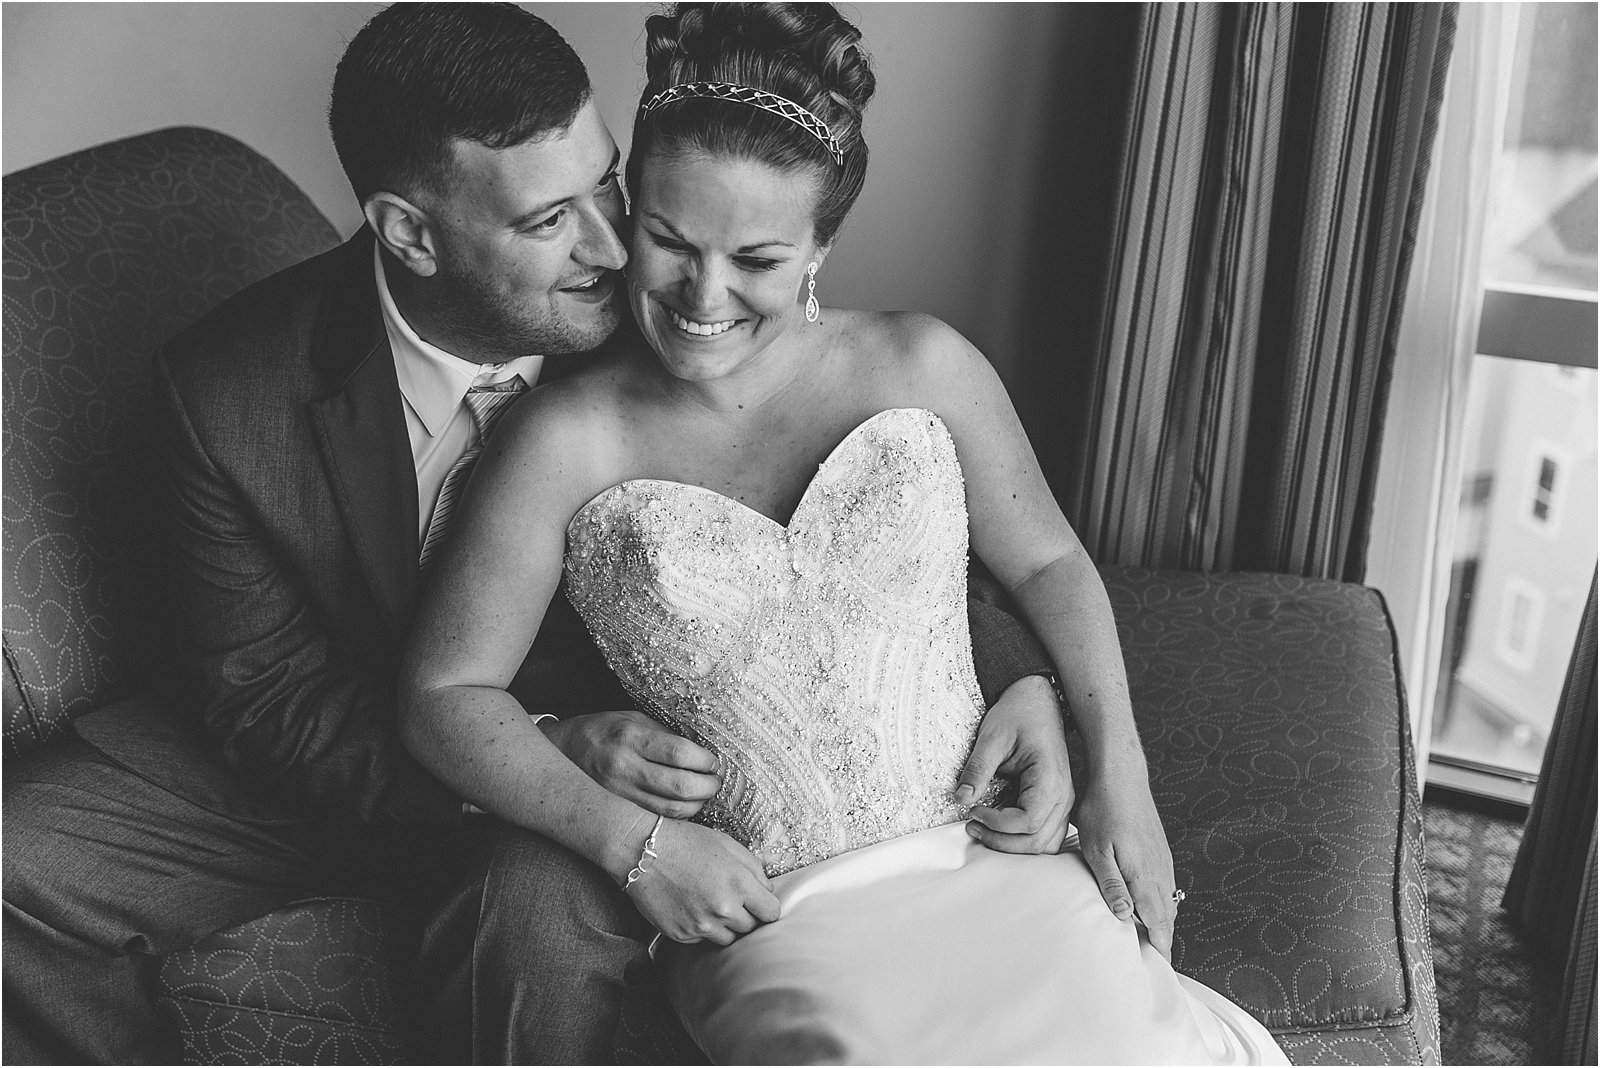 jessica_ryan_photography_lesner_inn_wedding_virginia_beach_rainy_day_0496